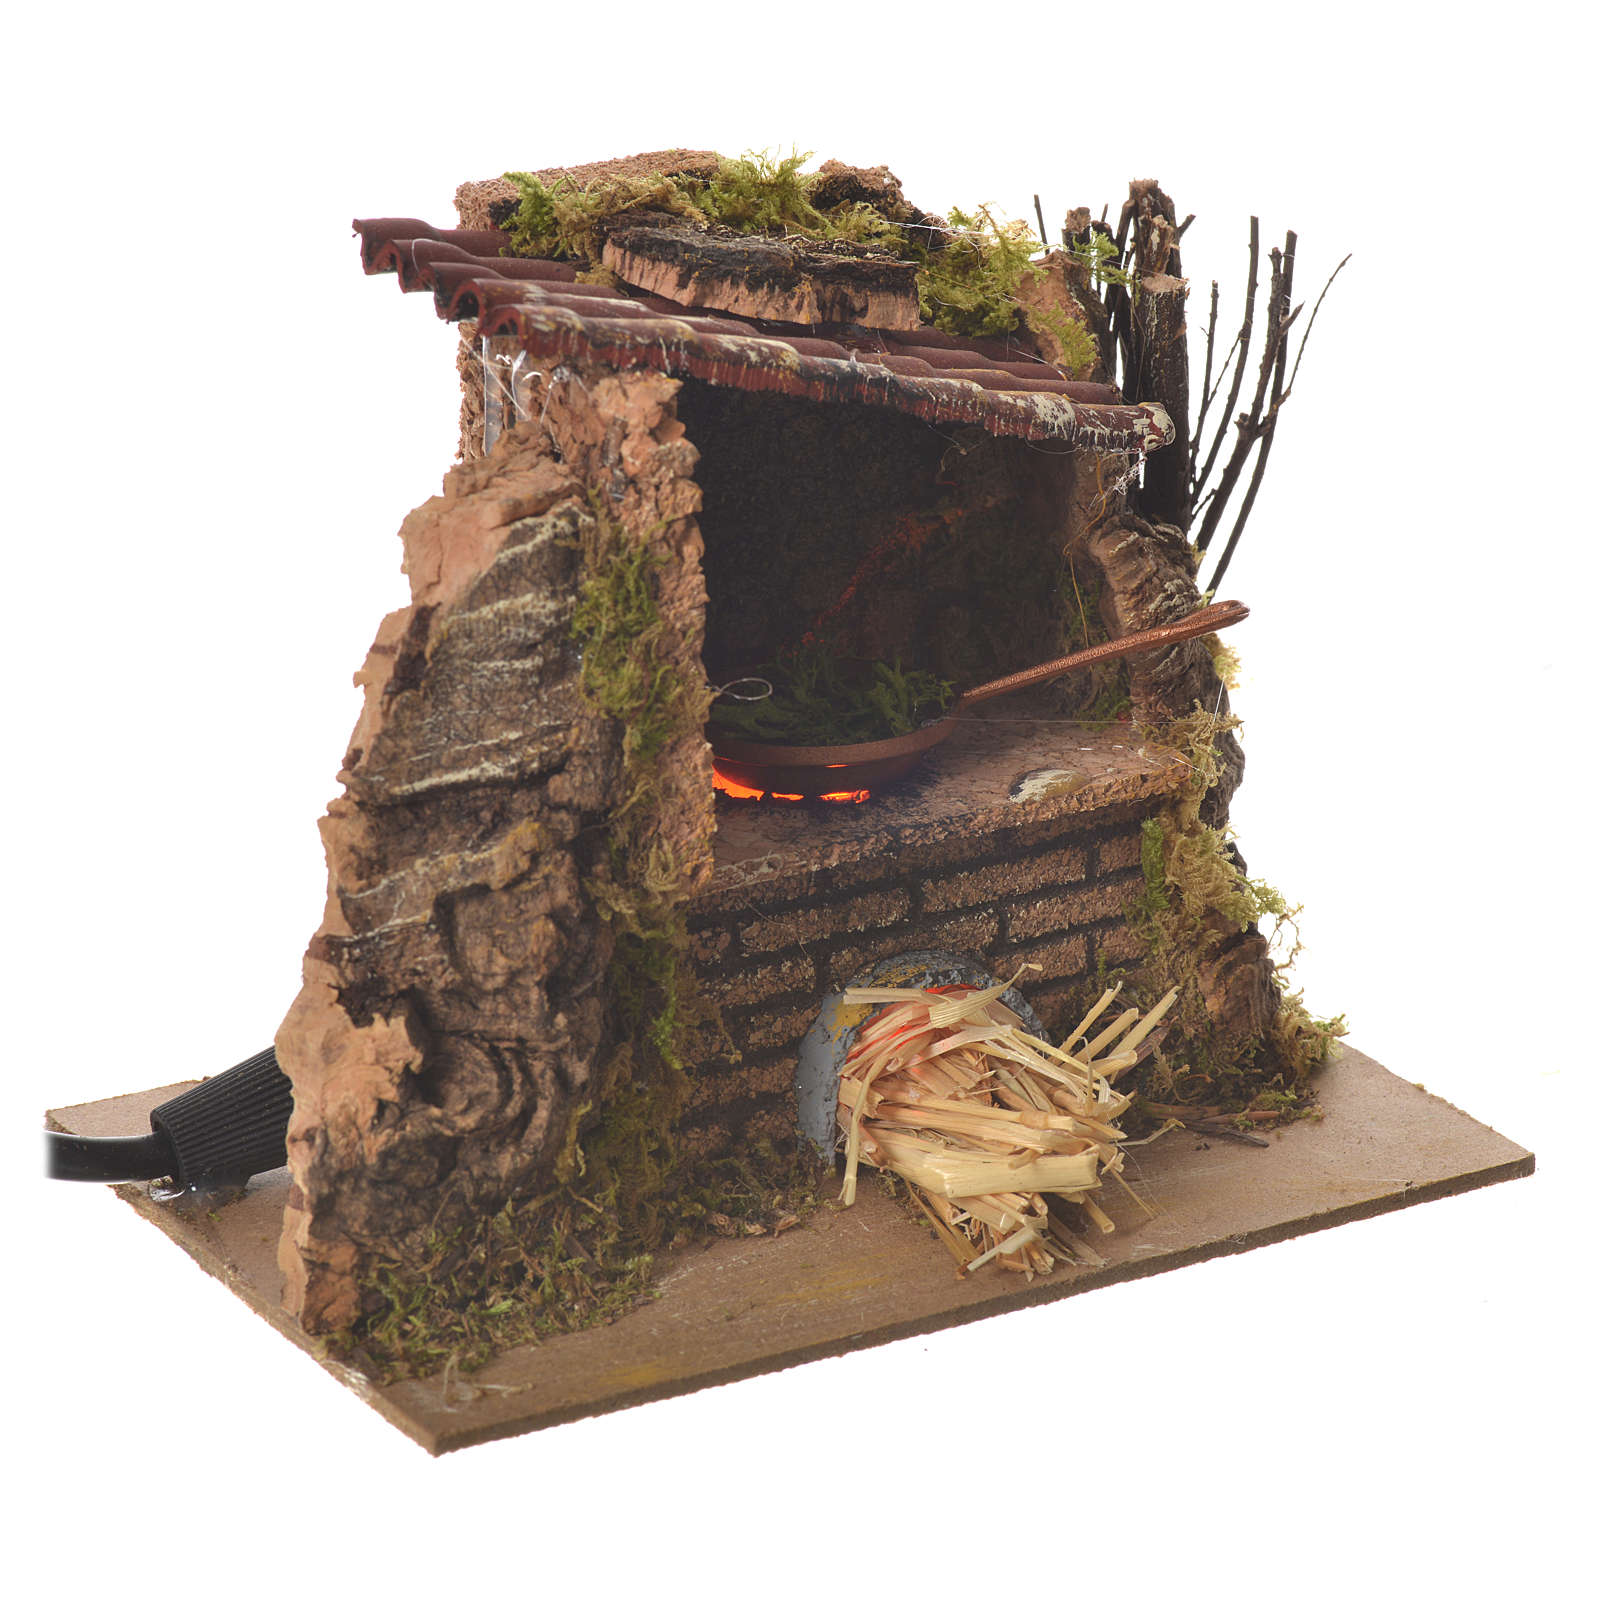 Nativity kitchen with pan in oven measuring 12x14x10cm 4